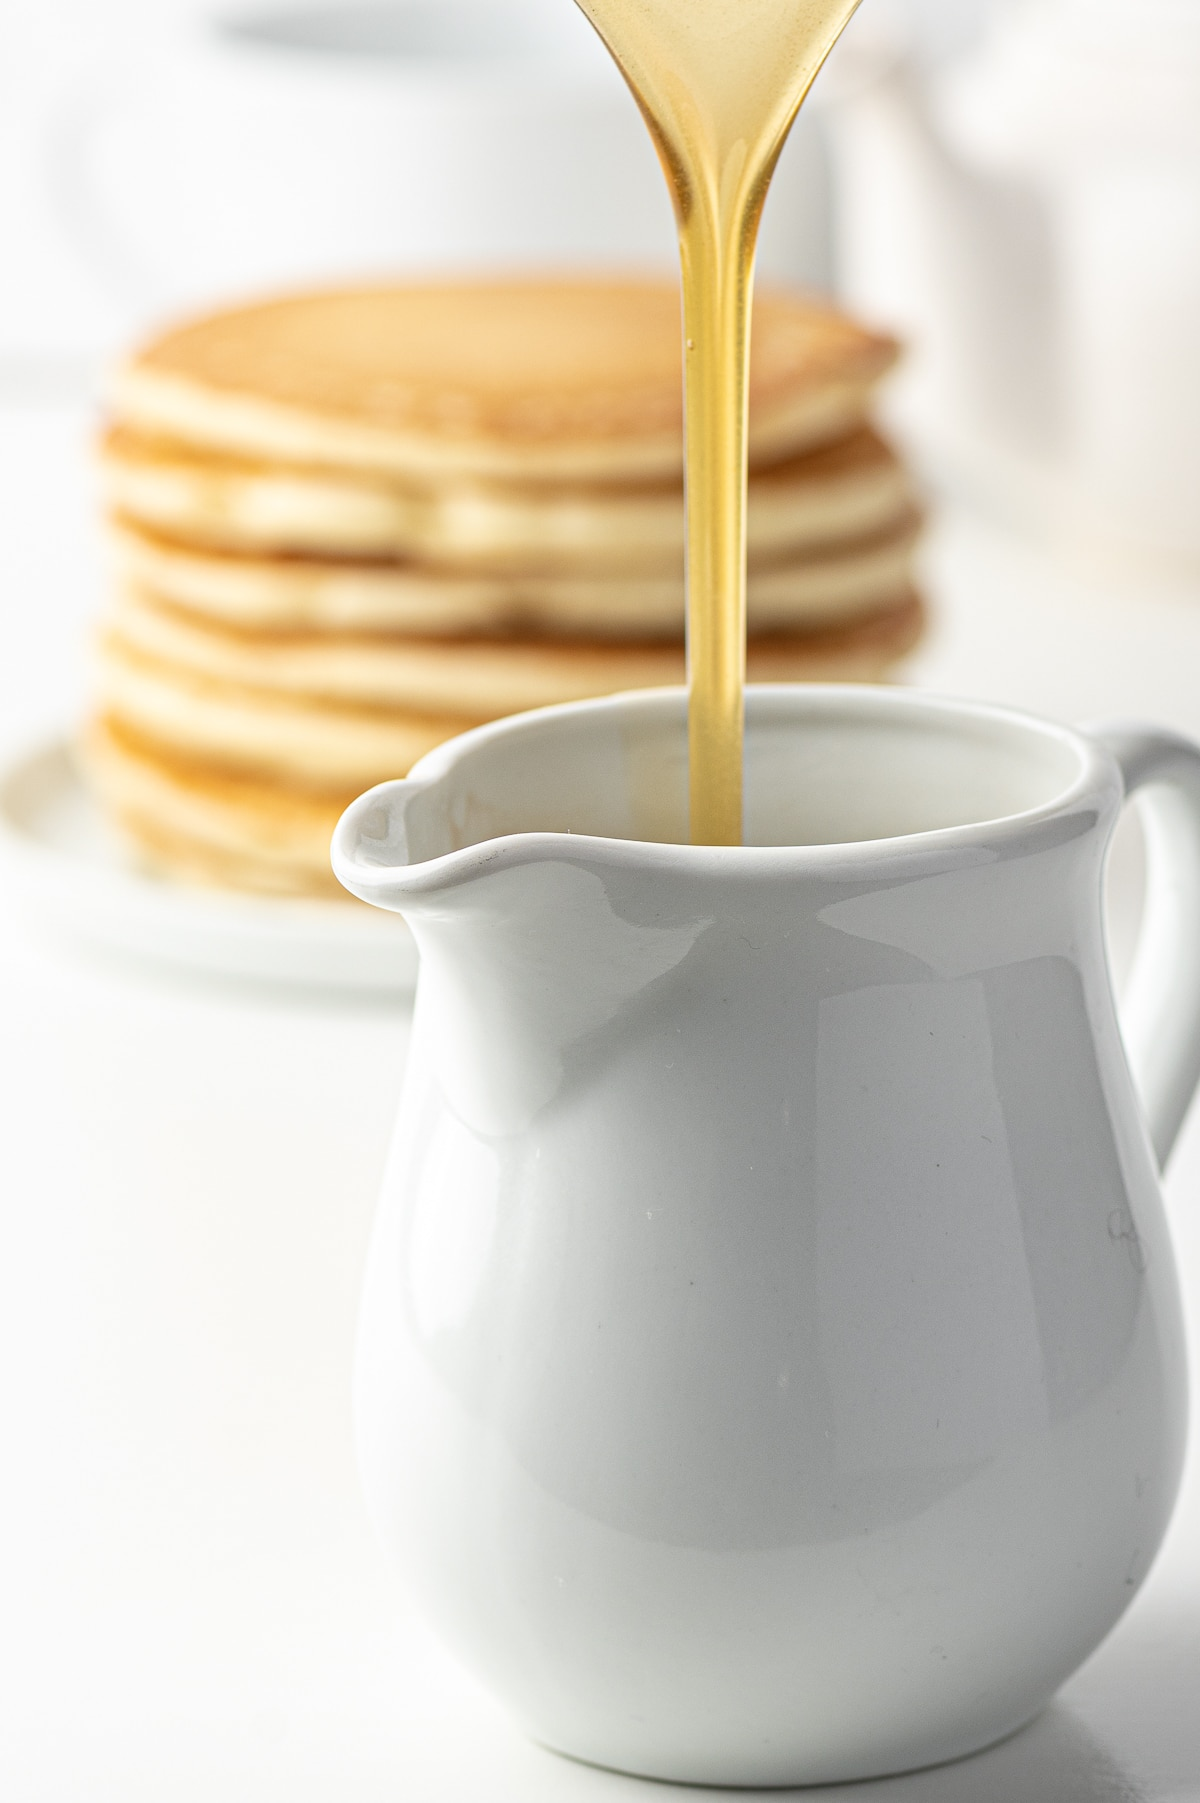 A stream of golden pancake syrup being poured into a white dish.  A stack of pancakes in the background slightly out of focus.